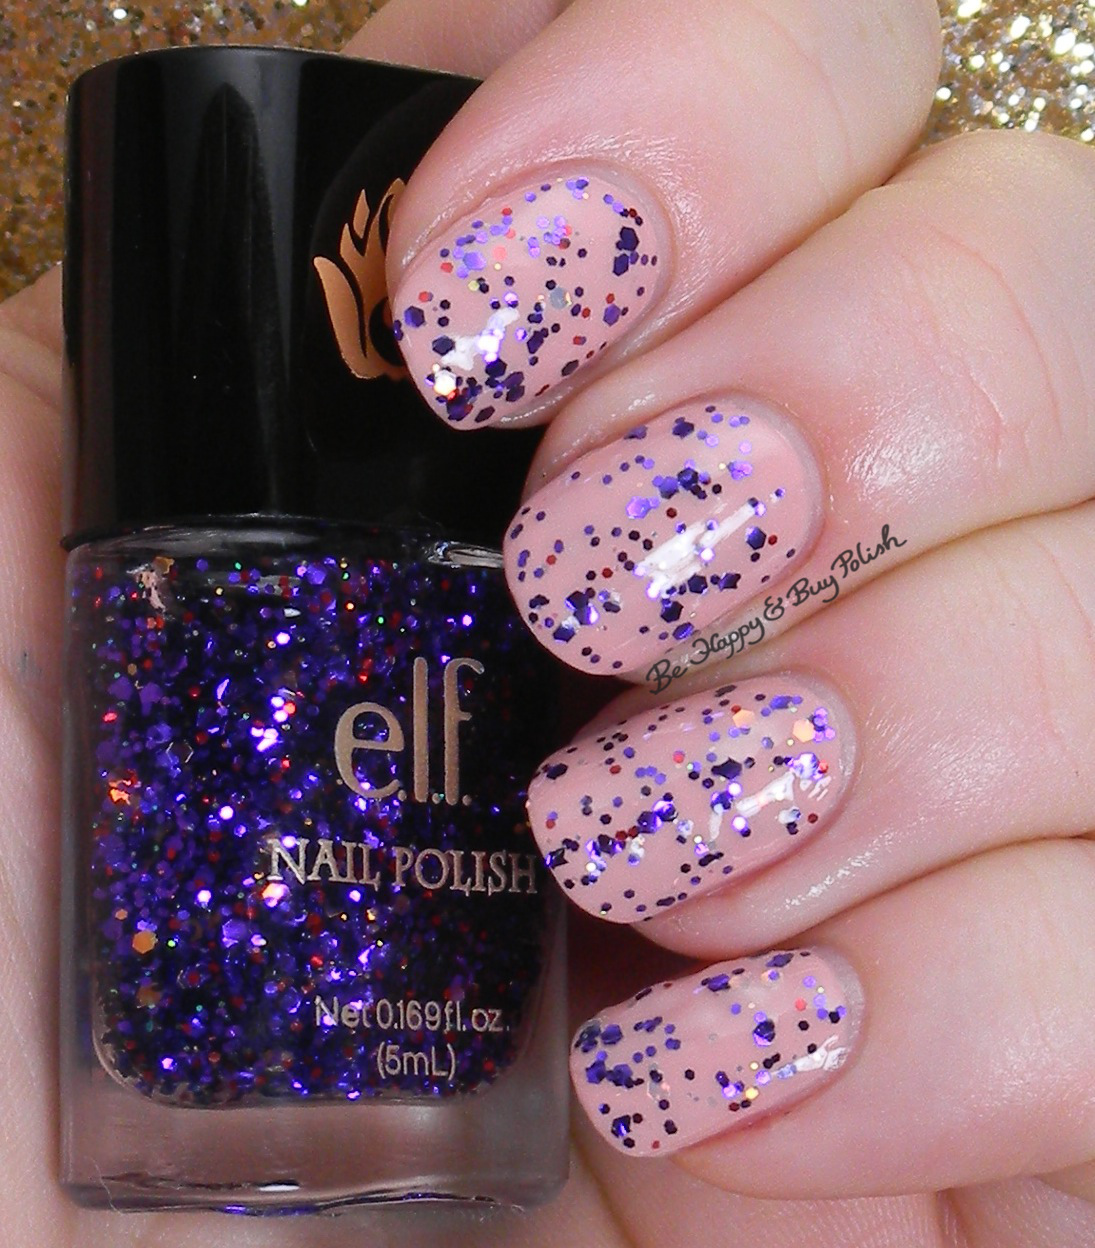 e.l.f. gina girl over nude | Be Happy And Buy Polish